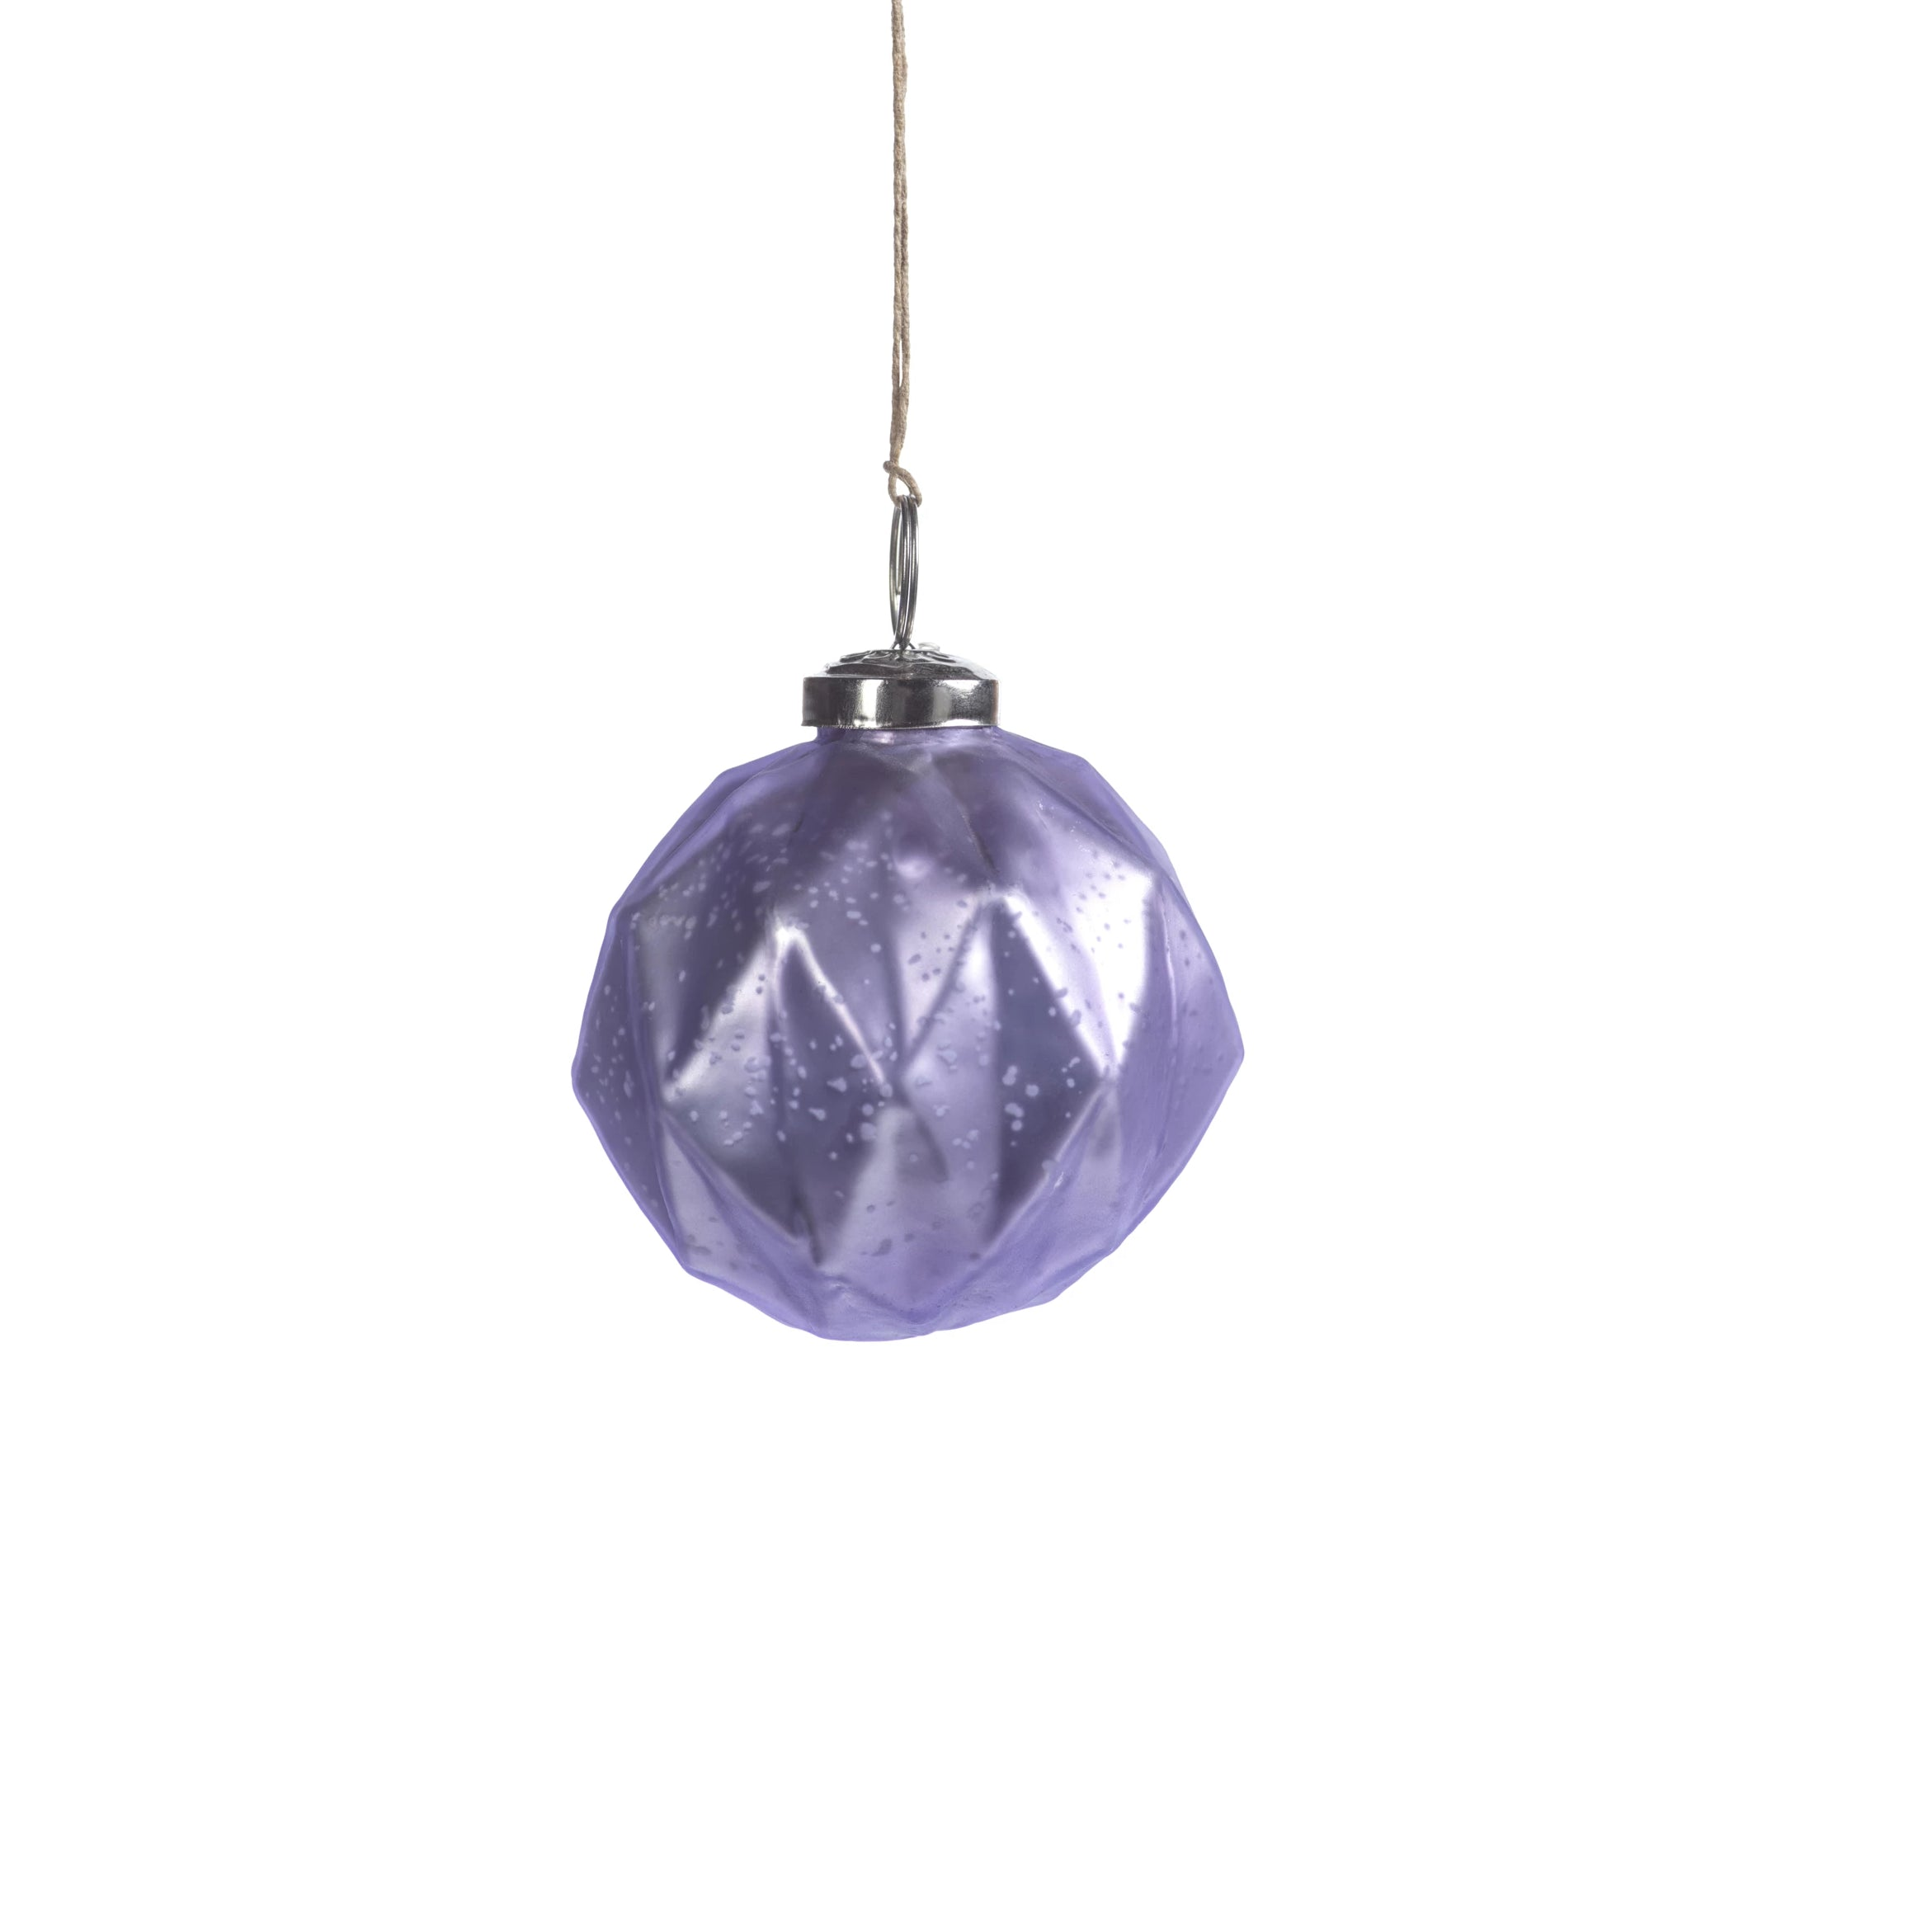 Faceted Glass Ornaments - Purple - CARLYLE AVENUE